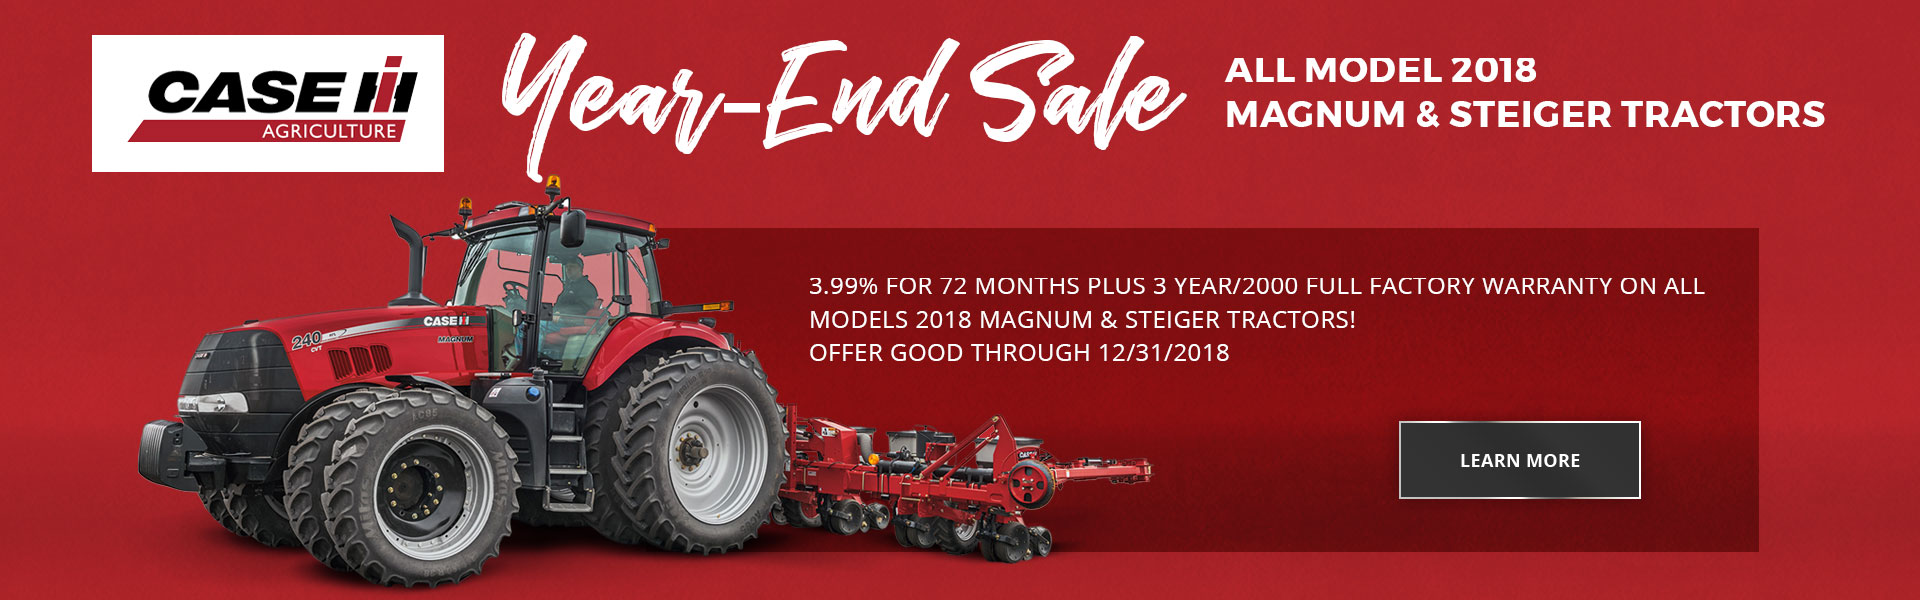 Case Year end sale